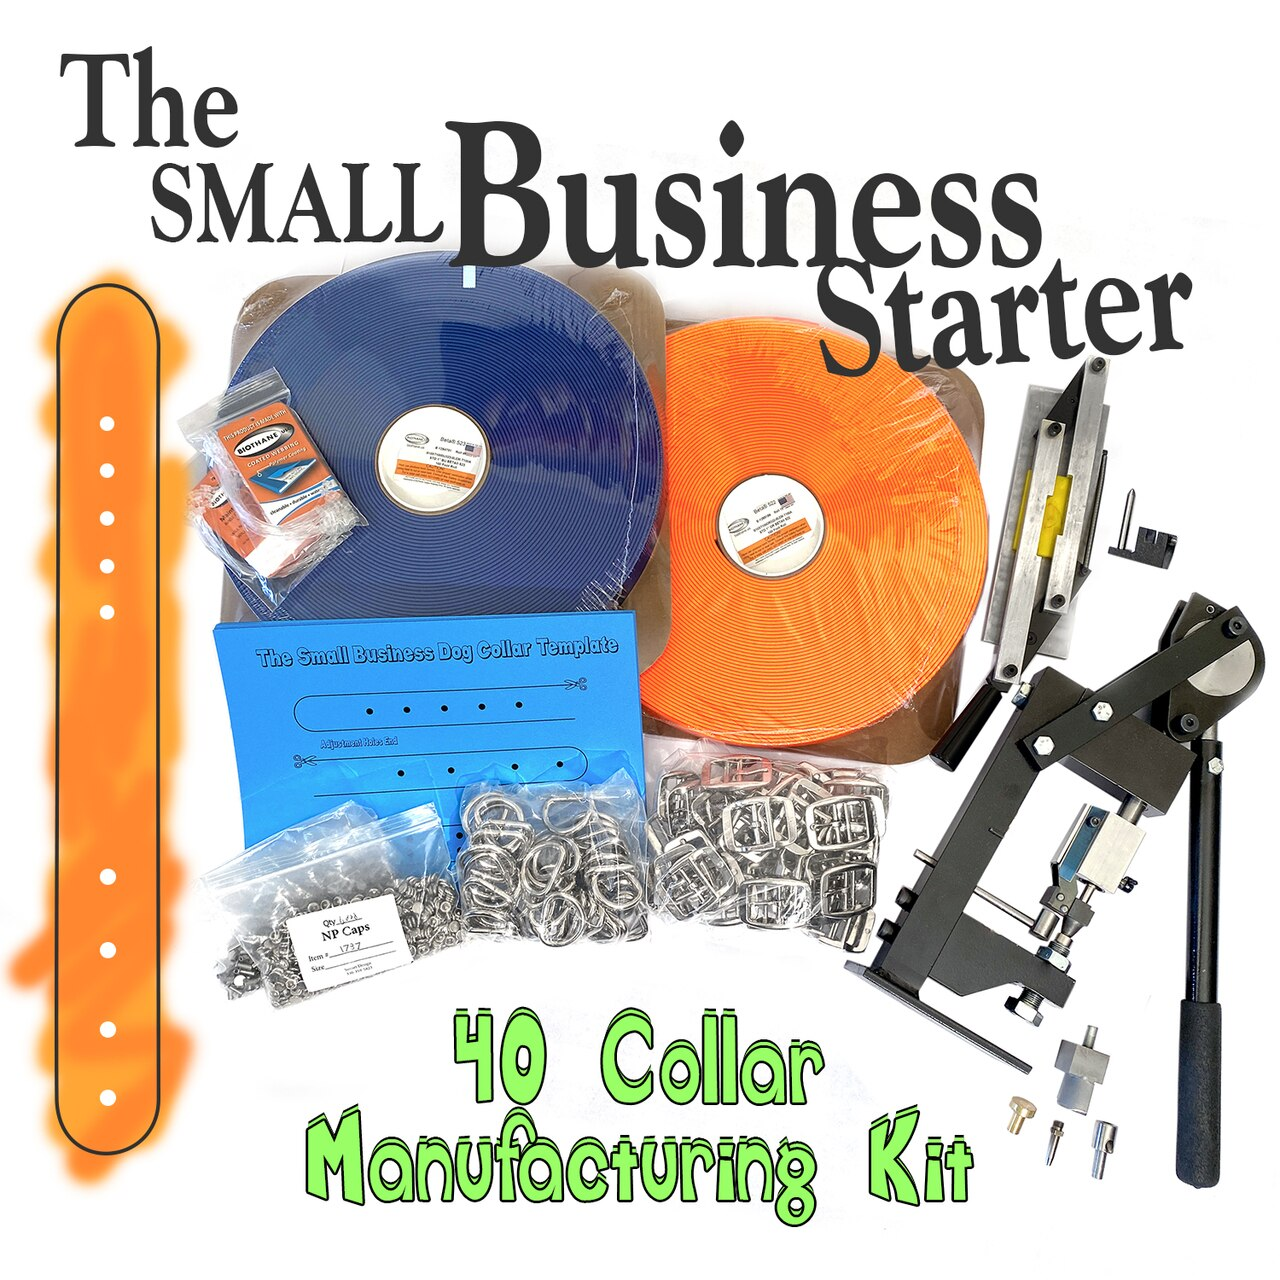 Small Business Starter Set